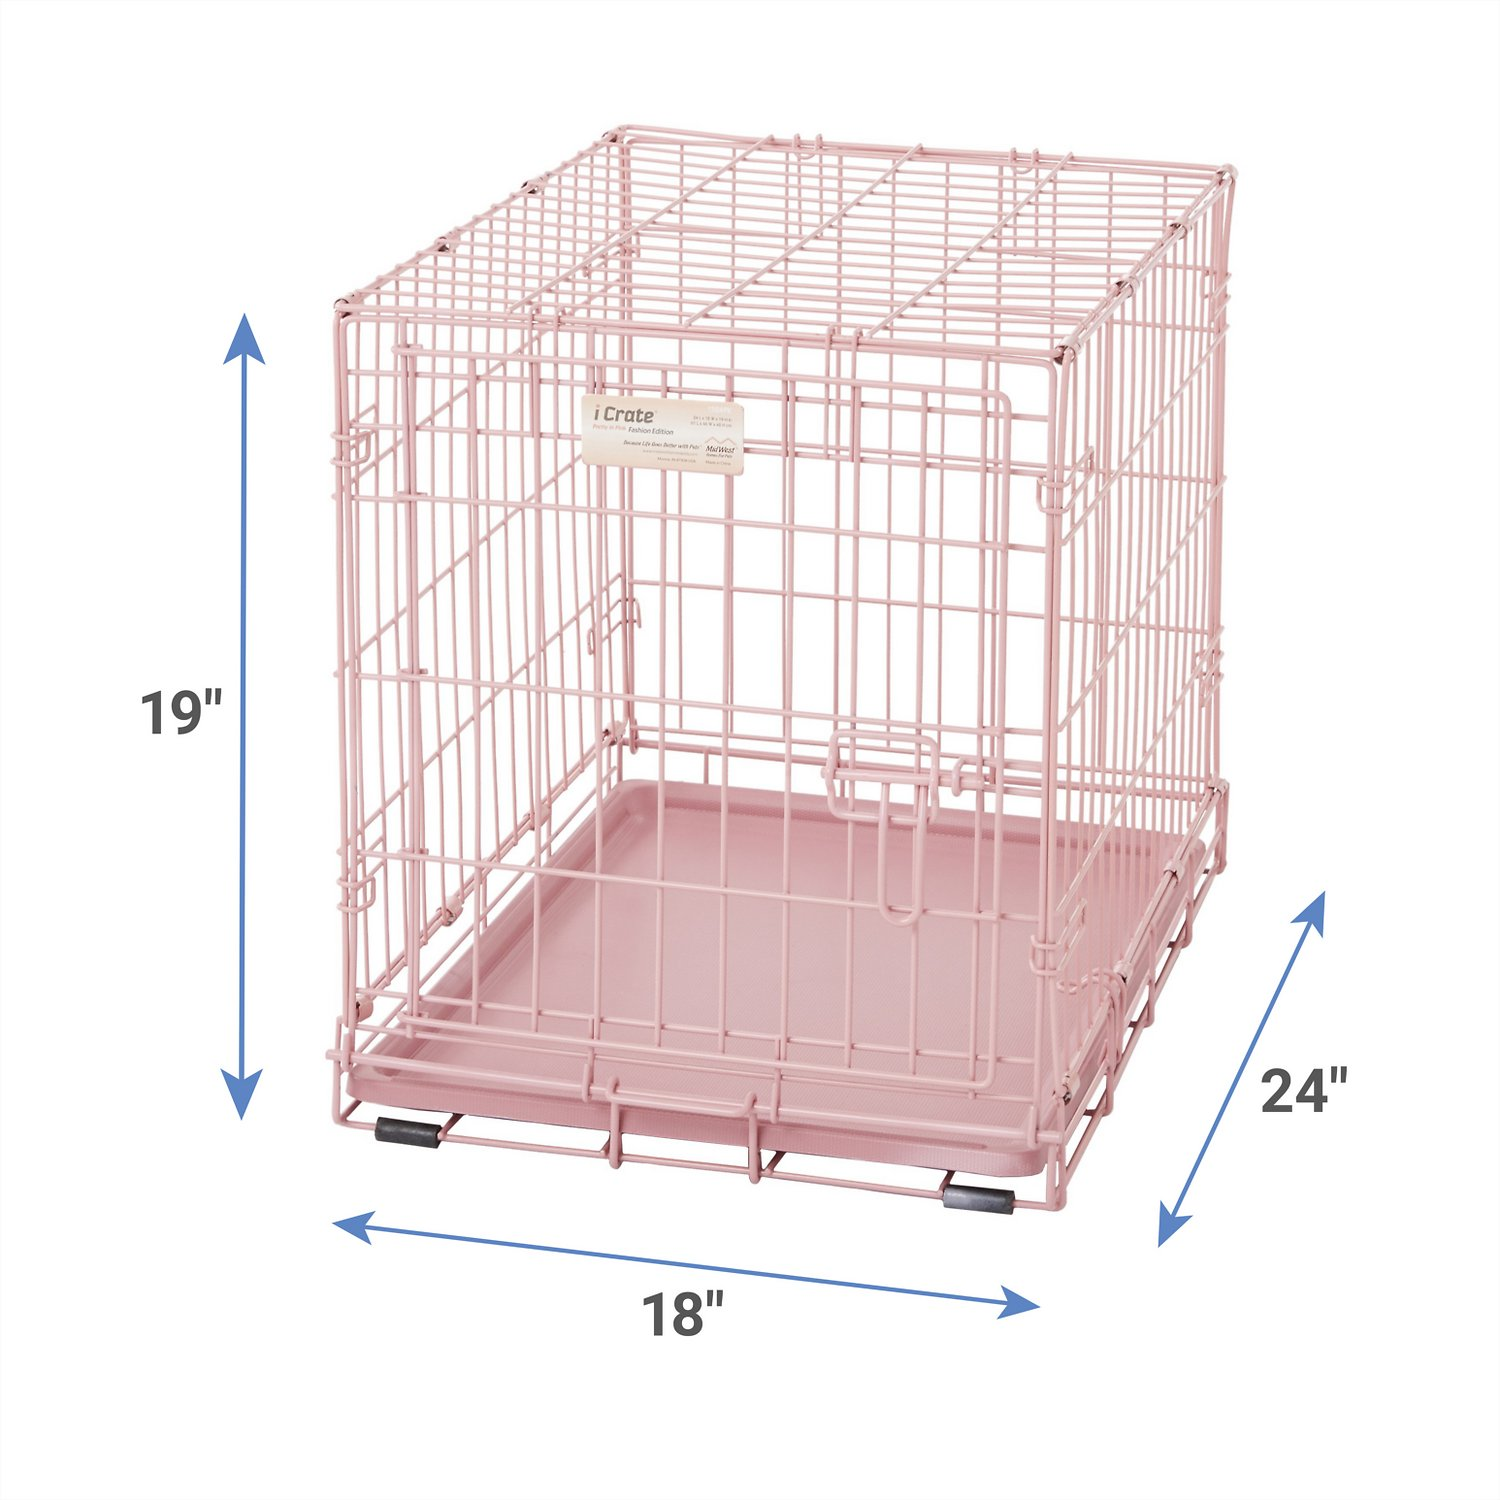 midwest icrate single door dog crate pink in  chewycom - midwest icrate single door dog crate pink